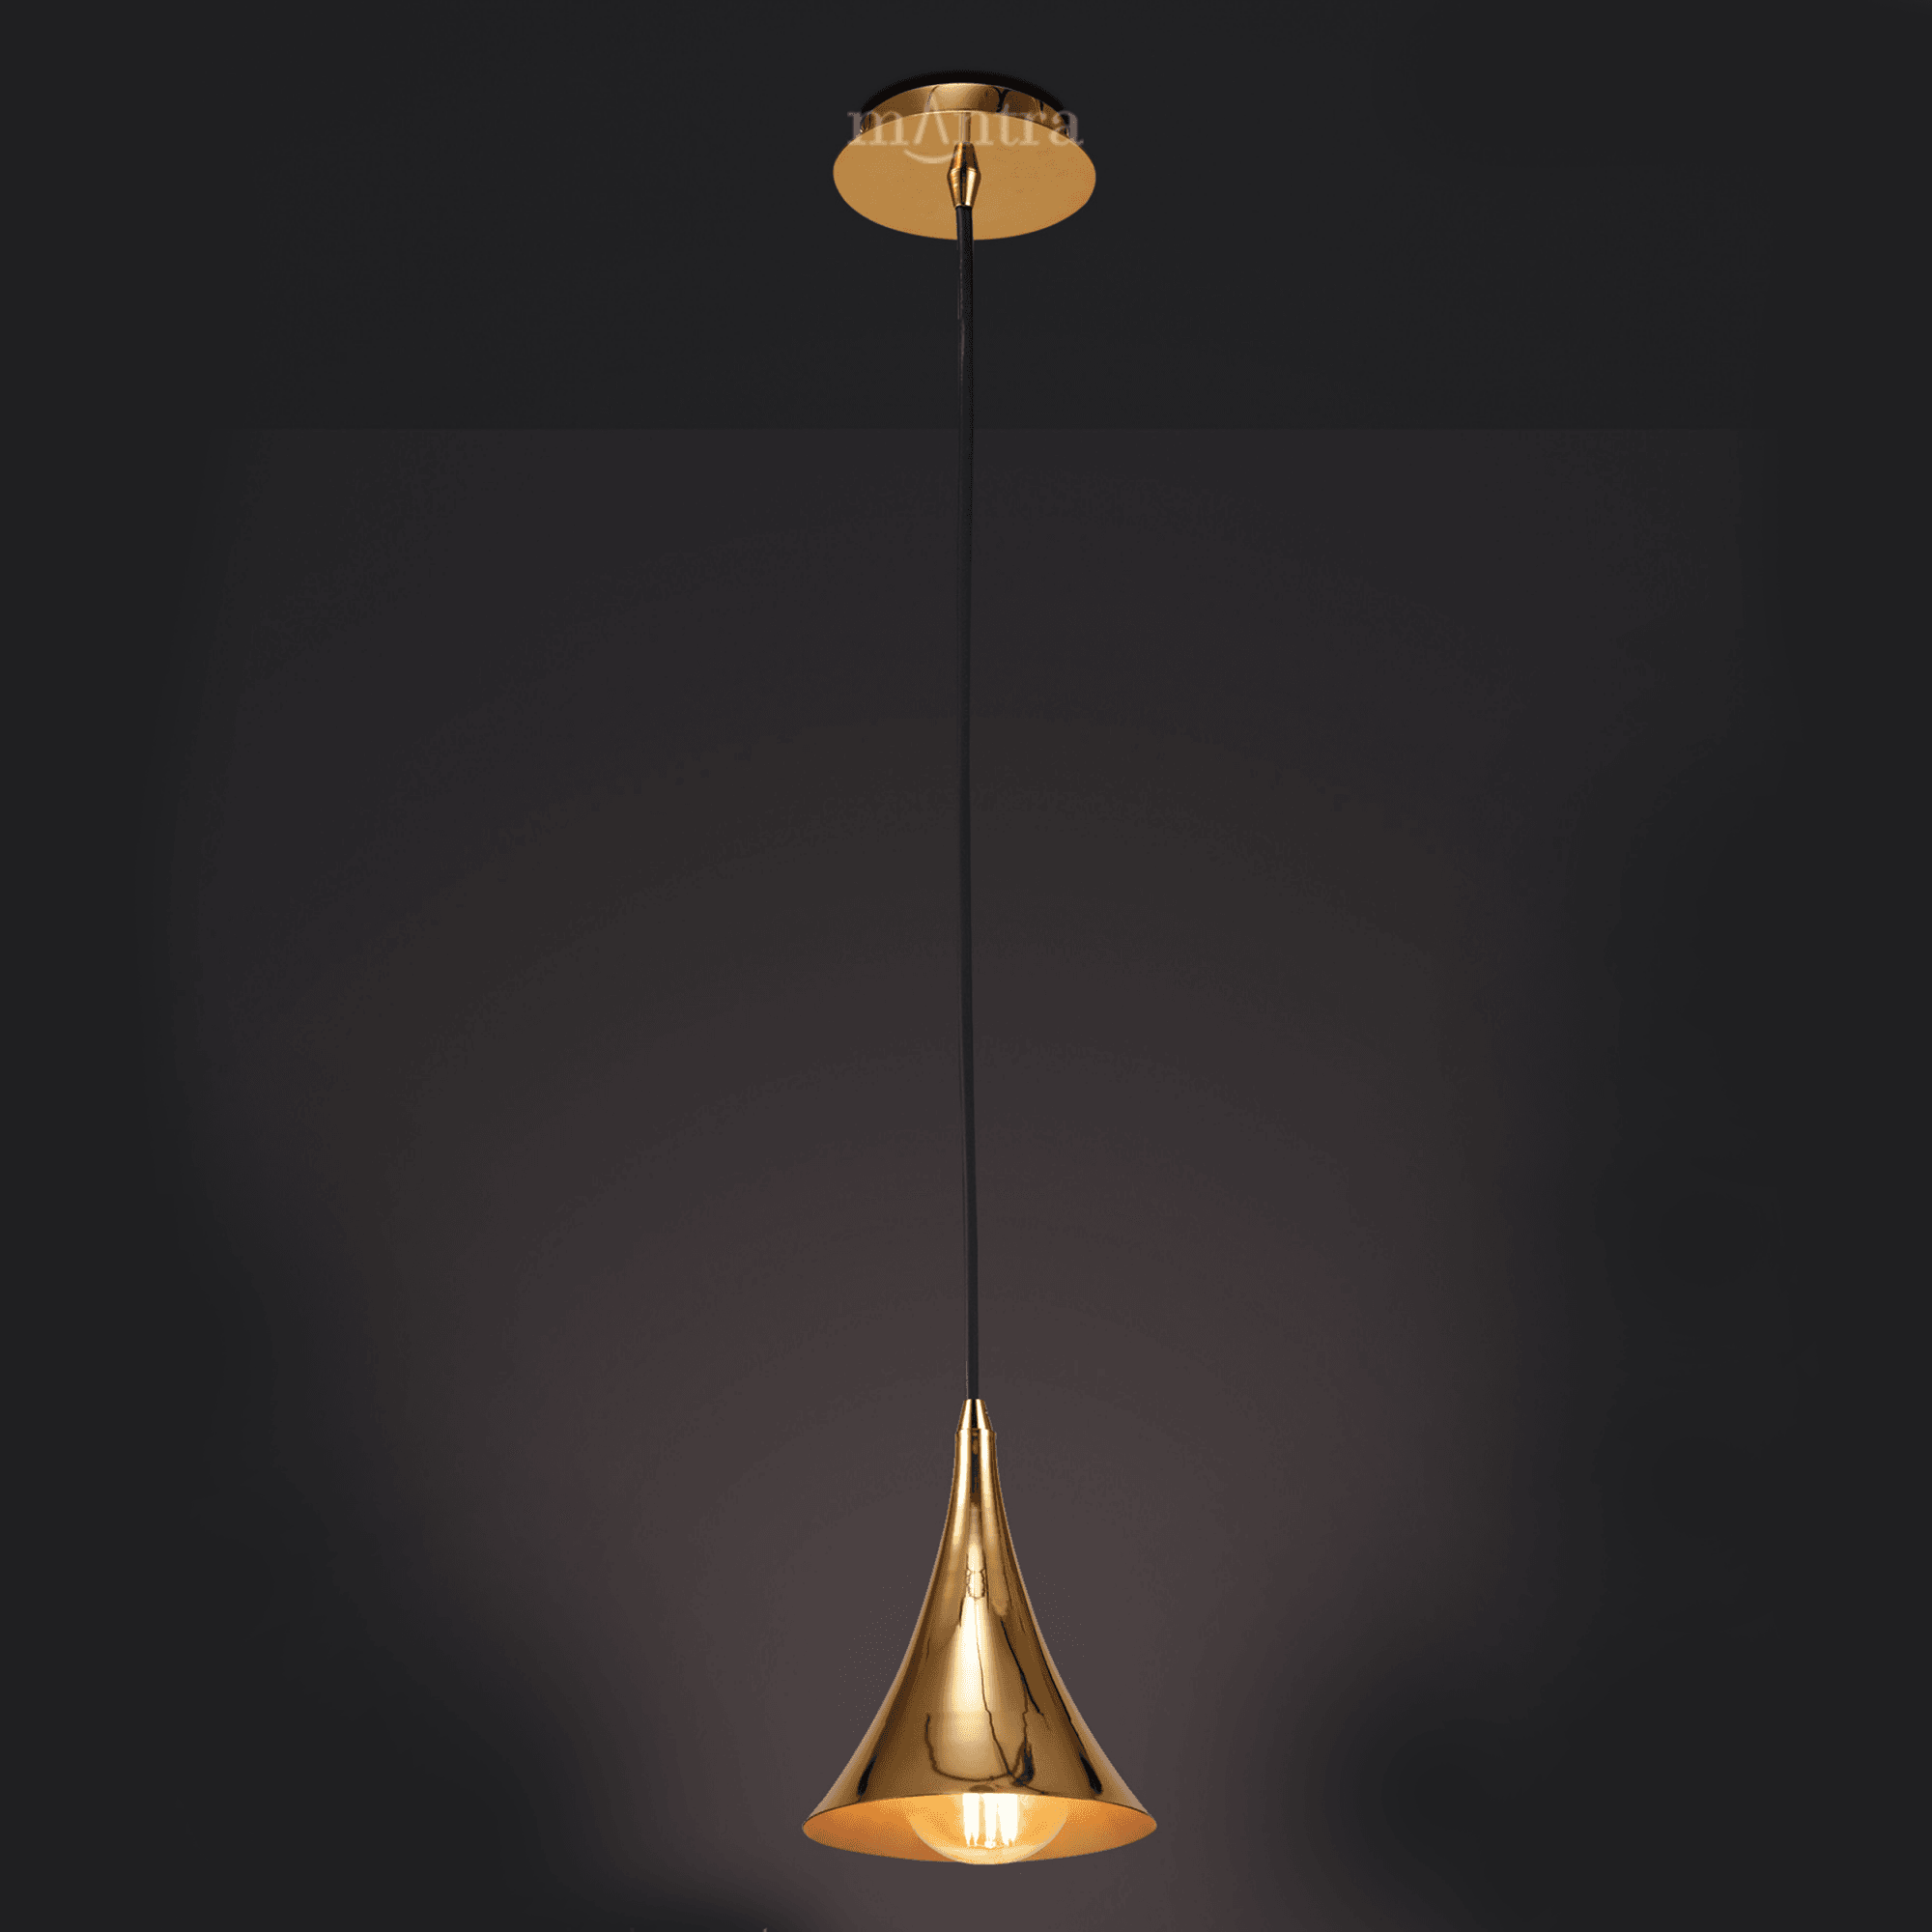 M5908 Jazz Oro Single Cone Pendant Light In Polished Gold